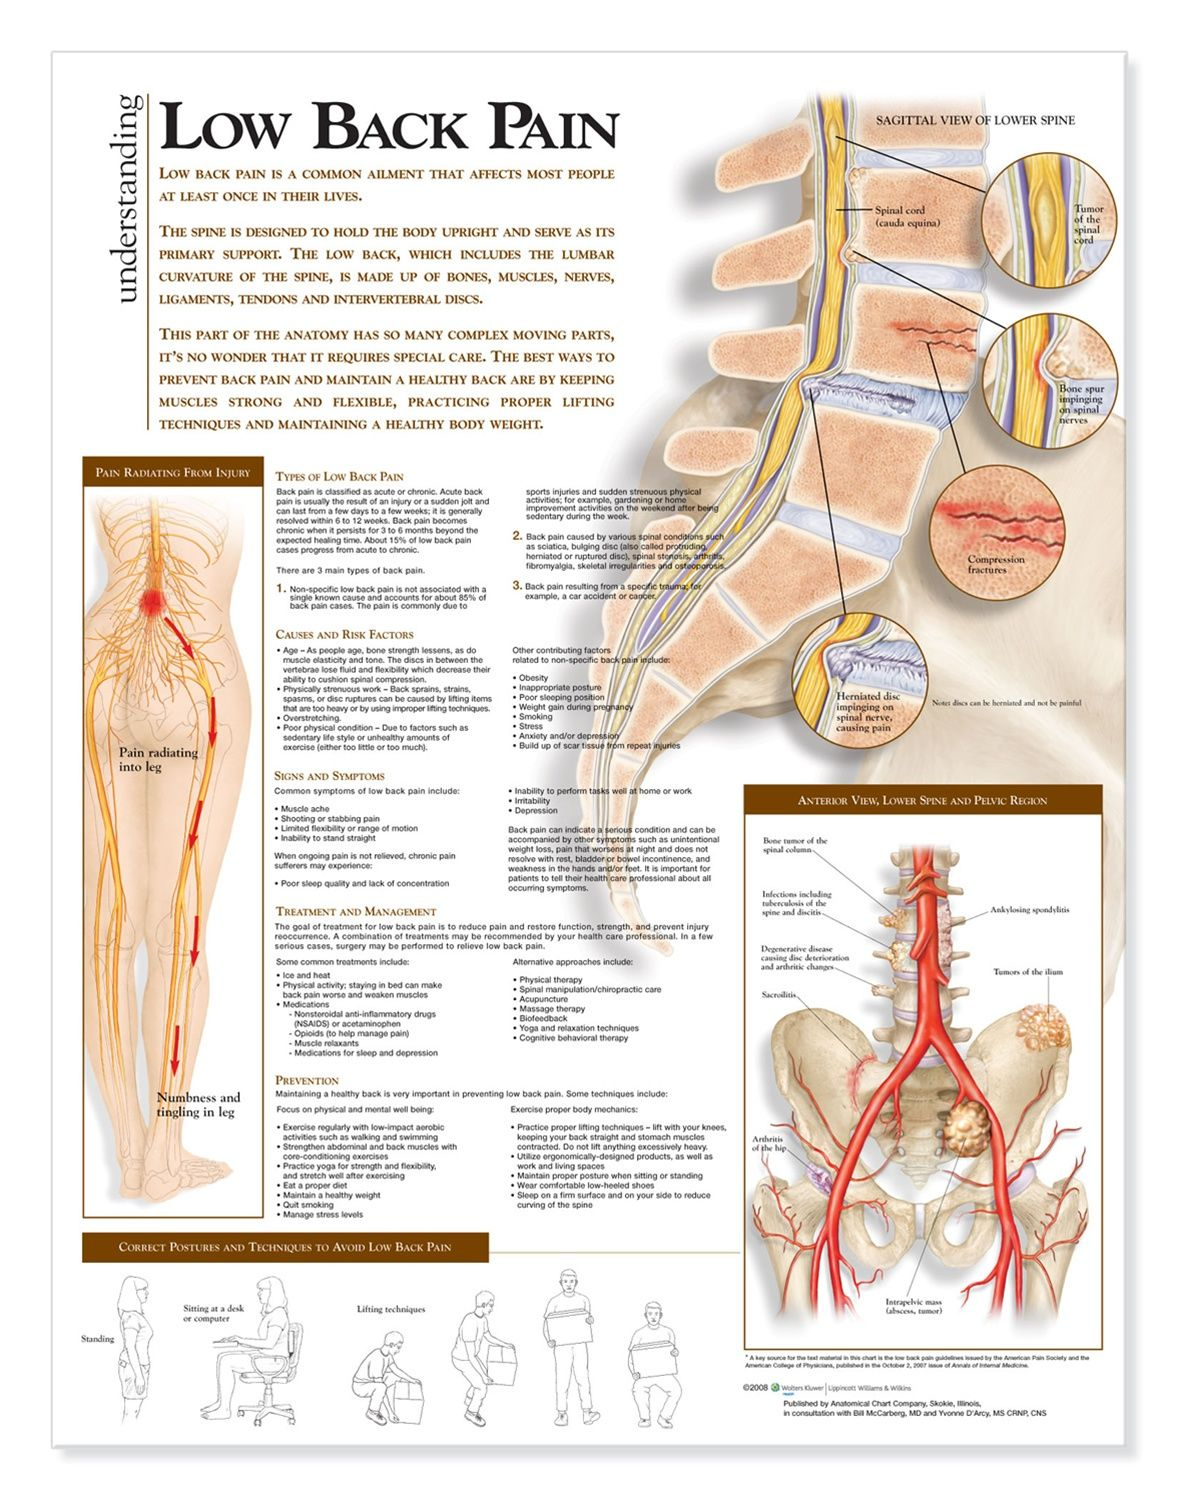 Pin by Rachel Ledgerwood on massage | Pinterest | Therapy, Medical ...